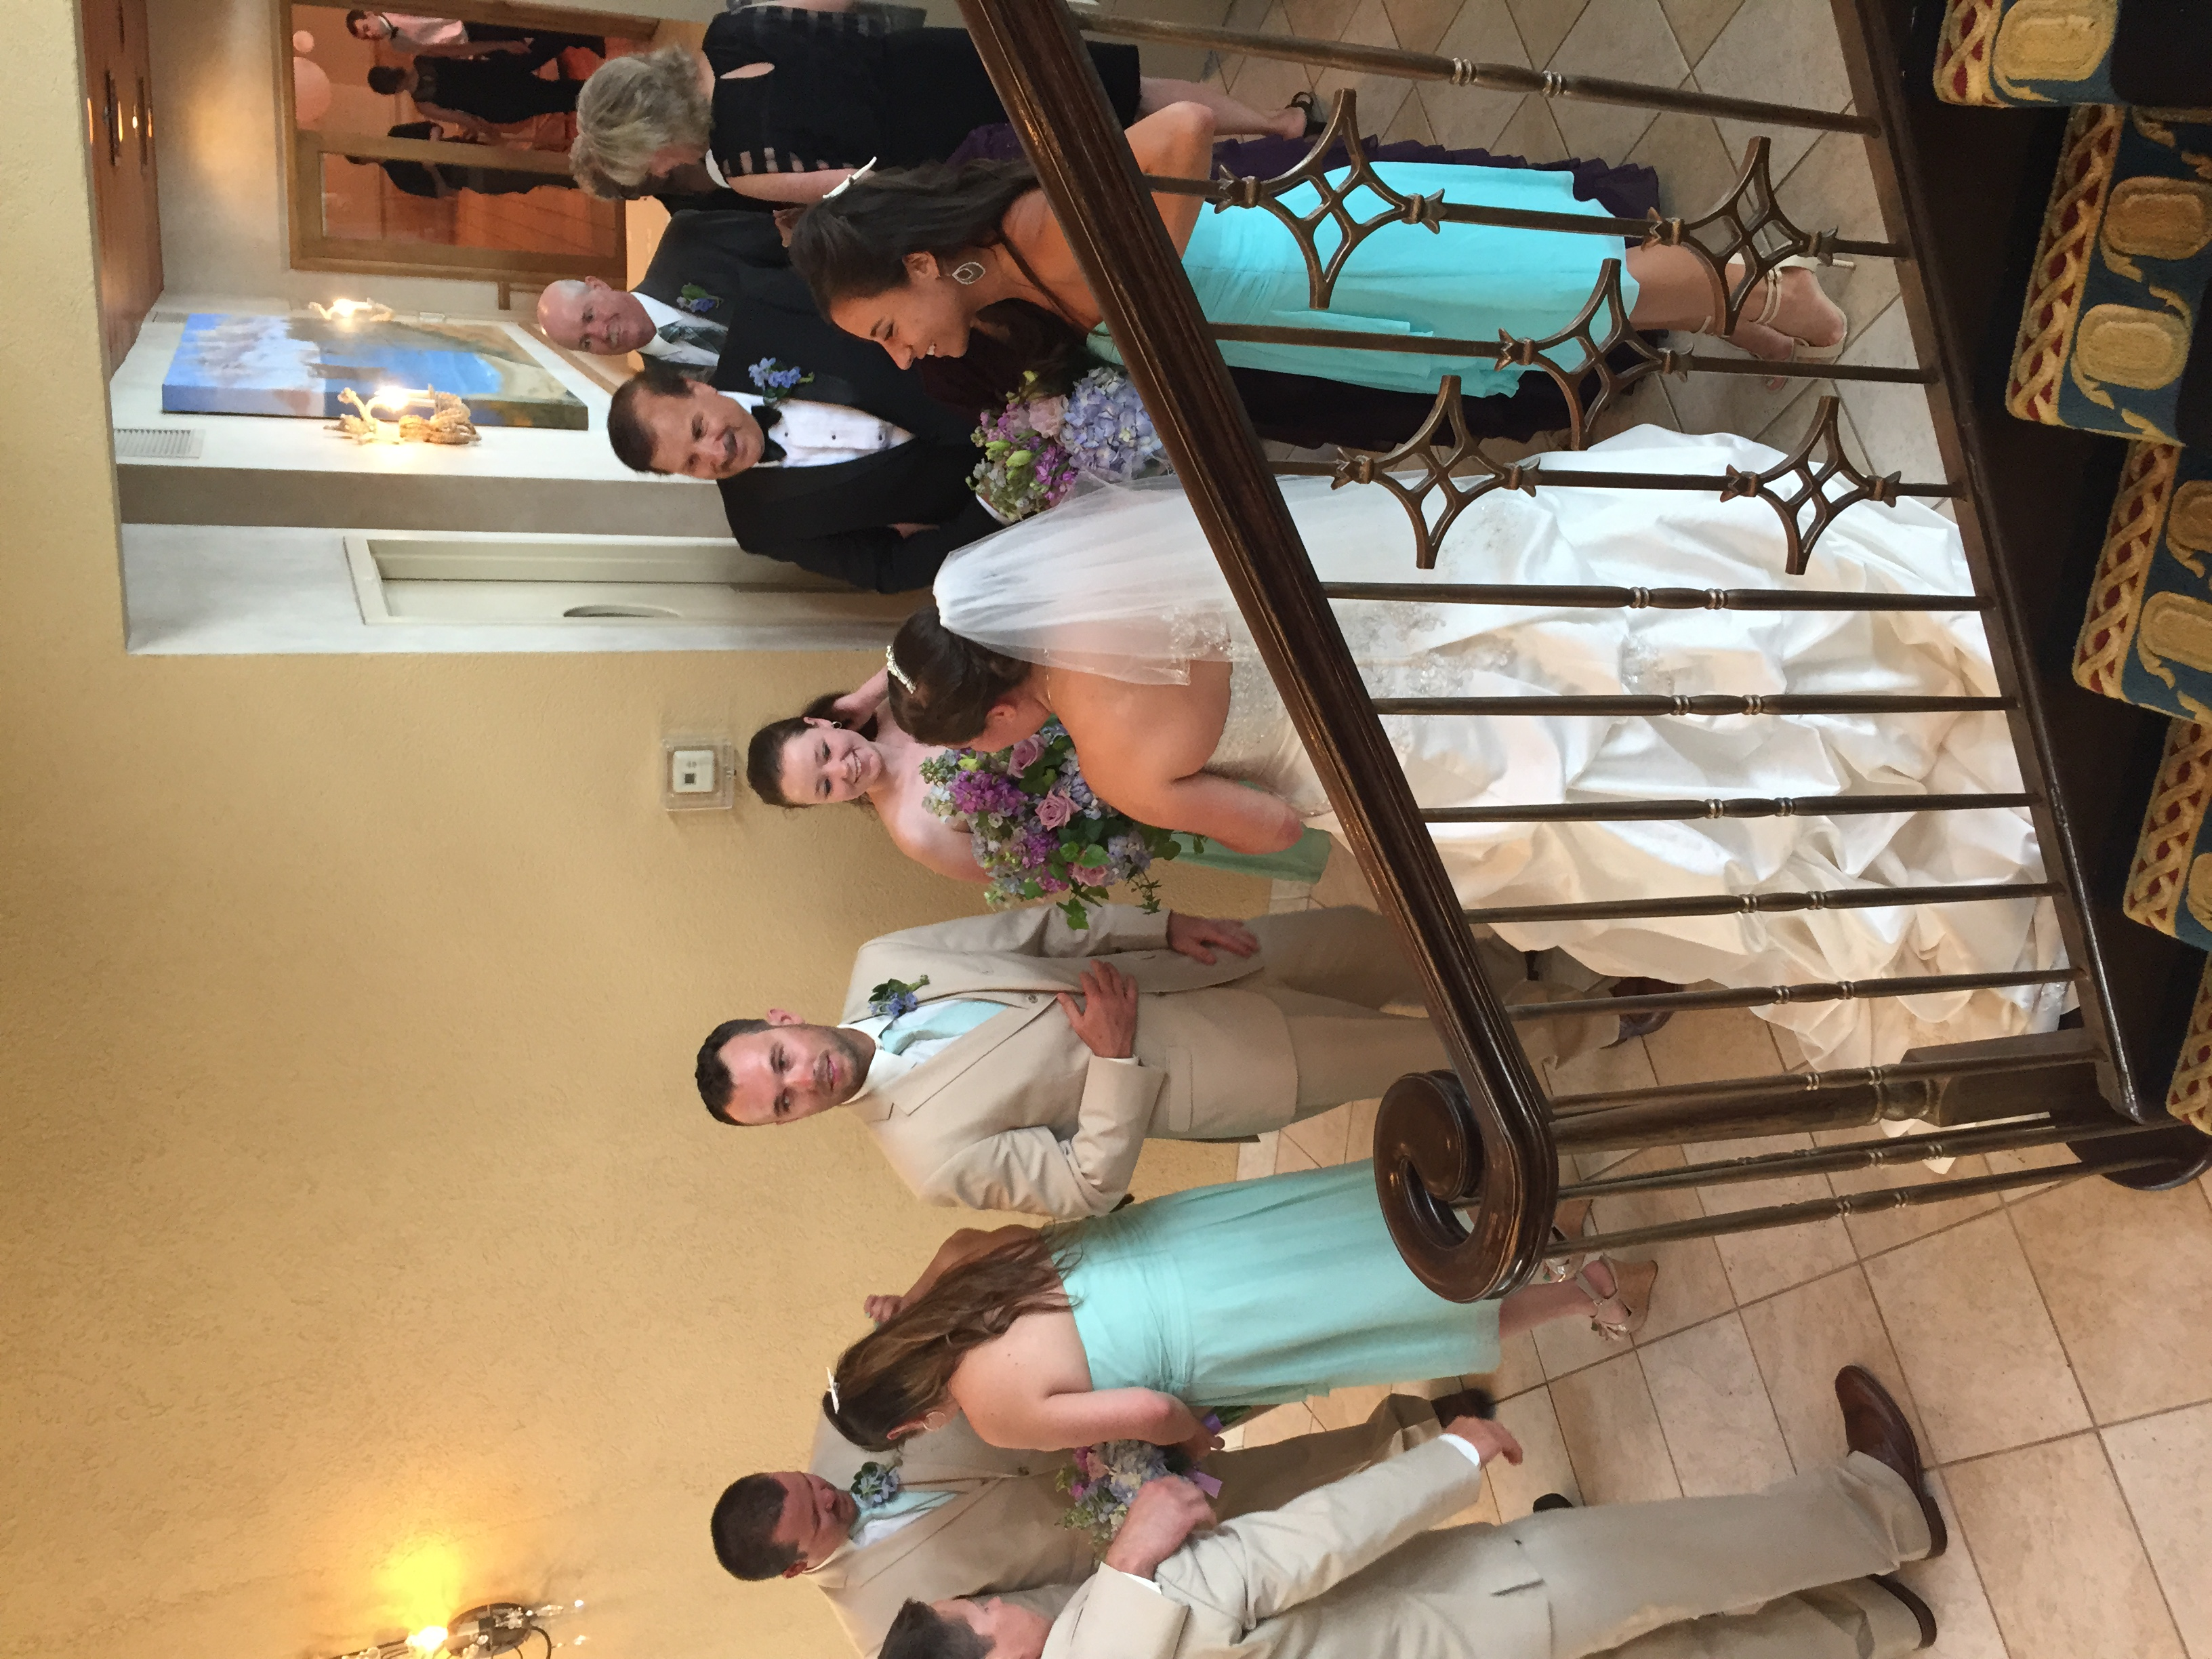 Another happy couple celebrated downstairs. We had dueling weddings. jk jk...The venue is set up so both parties have privacy. I hope we weren't too loud for them. Our party got a little out of control...